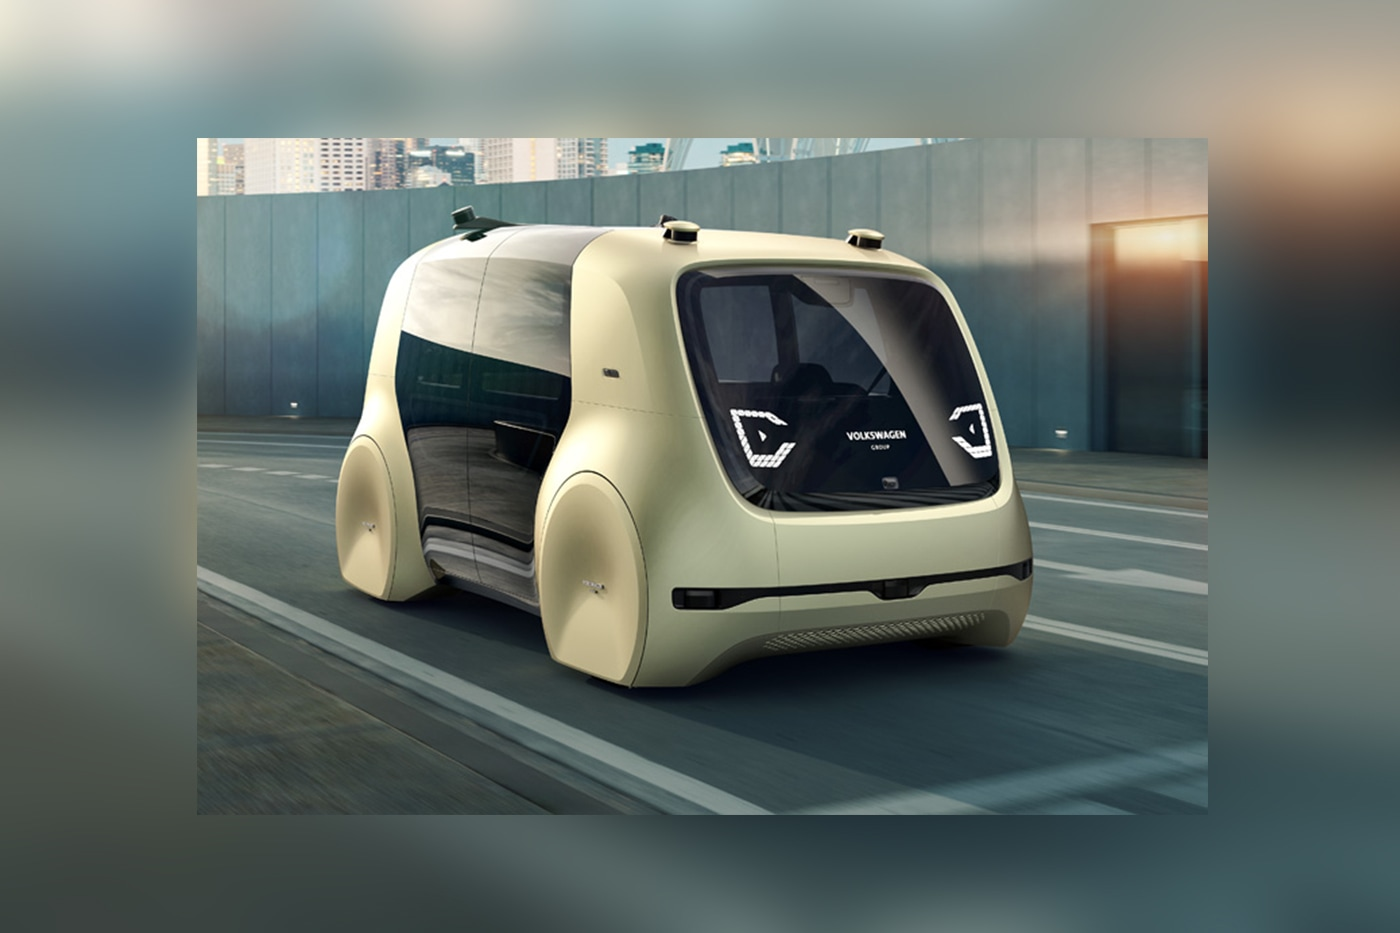 Vw 39 S 39 Sedric 39 Self Driving Car Could Chauffer You Or Strangers